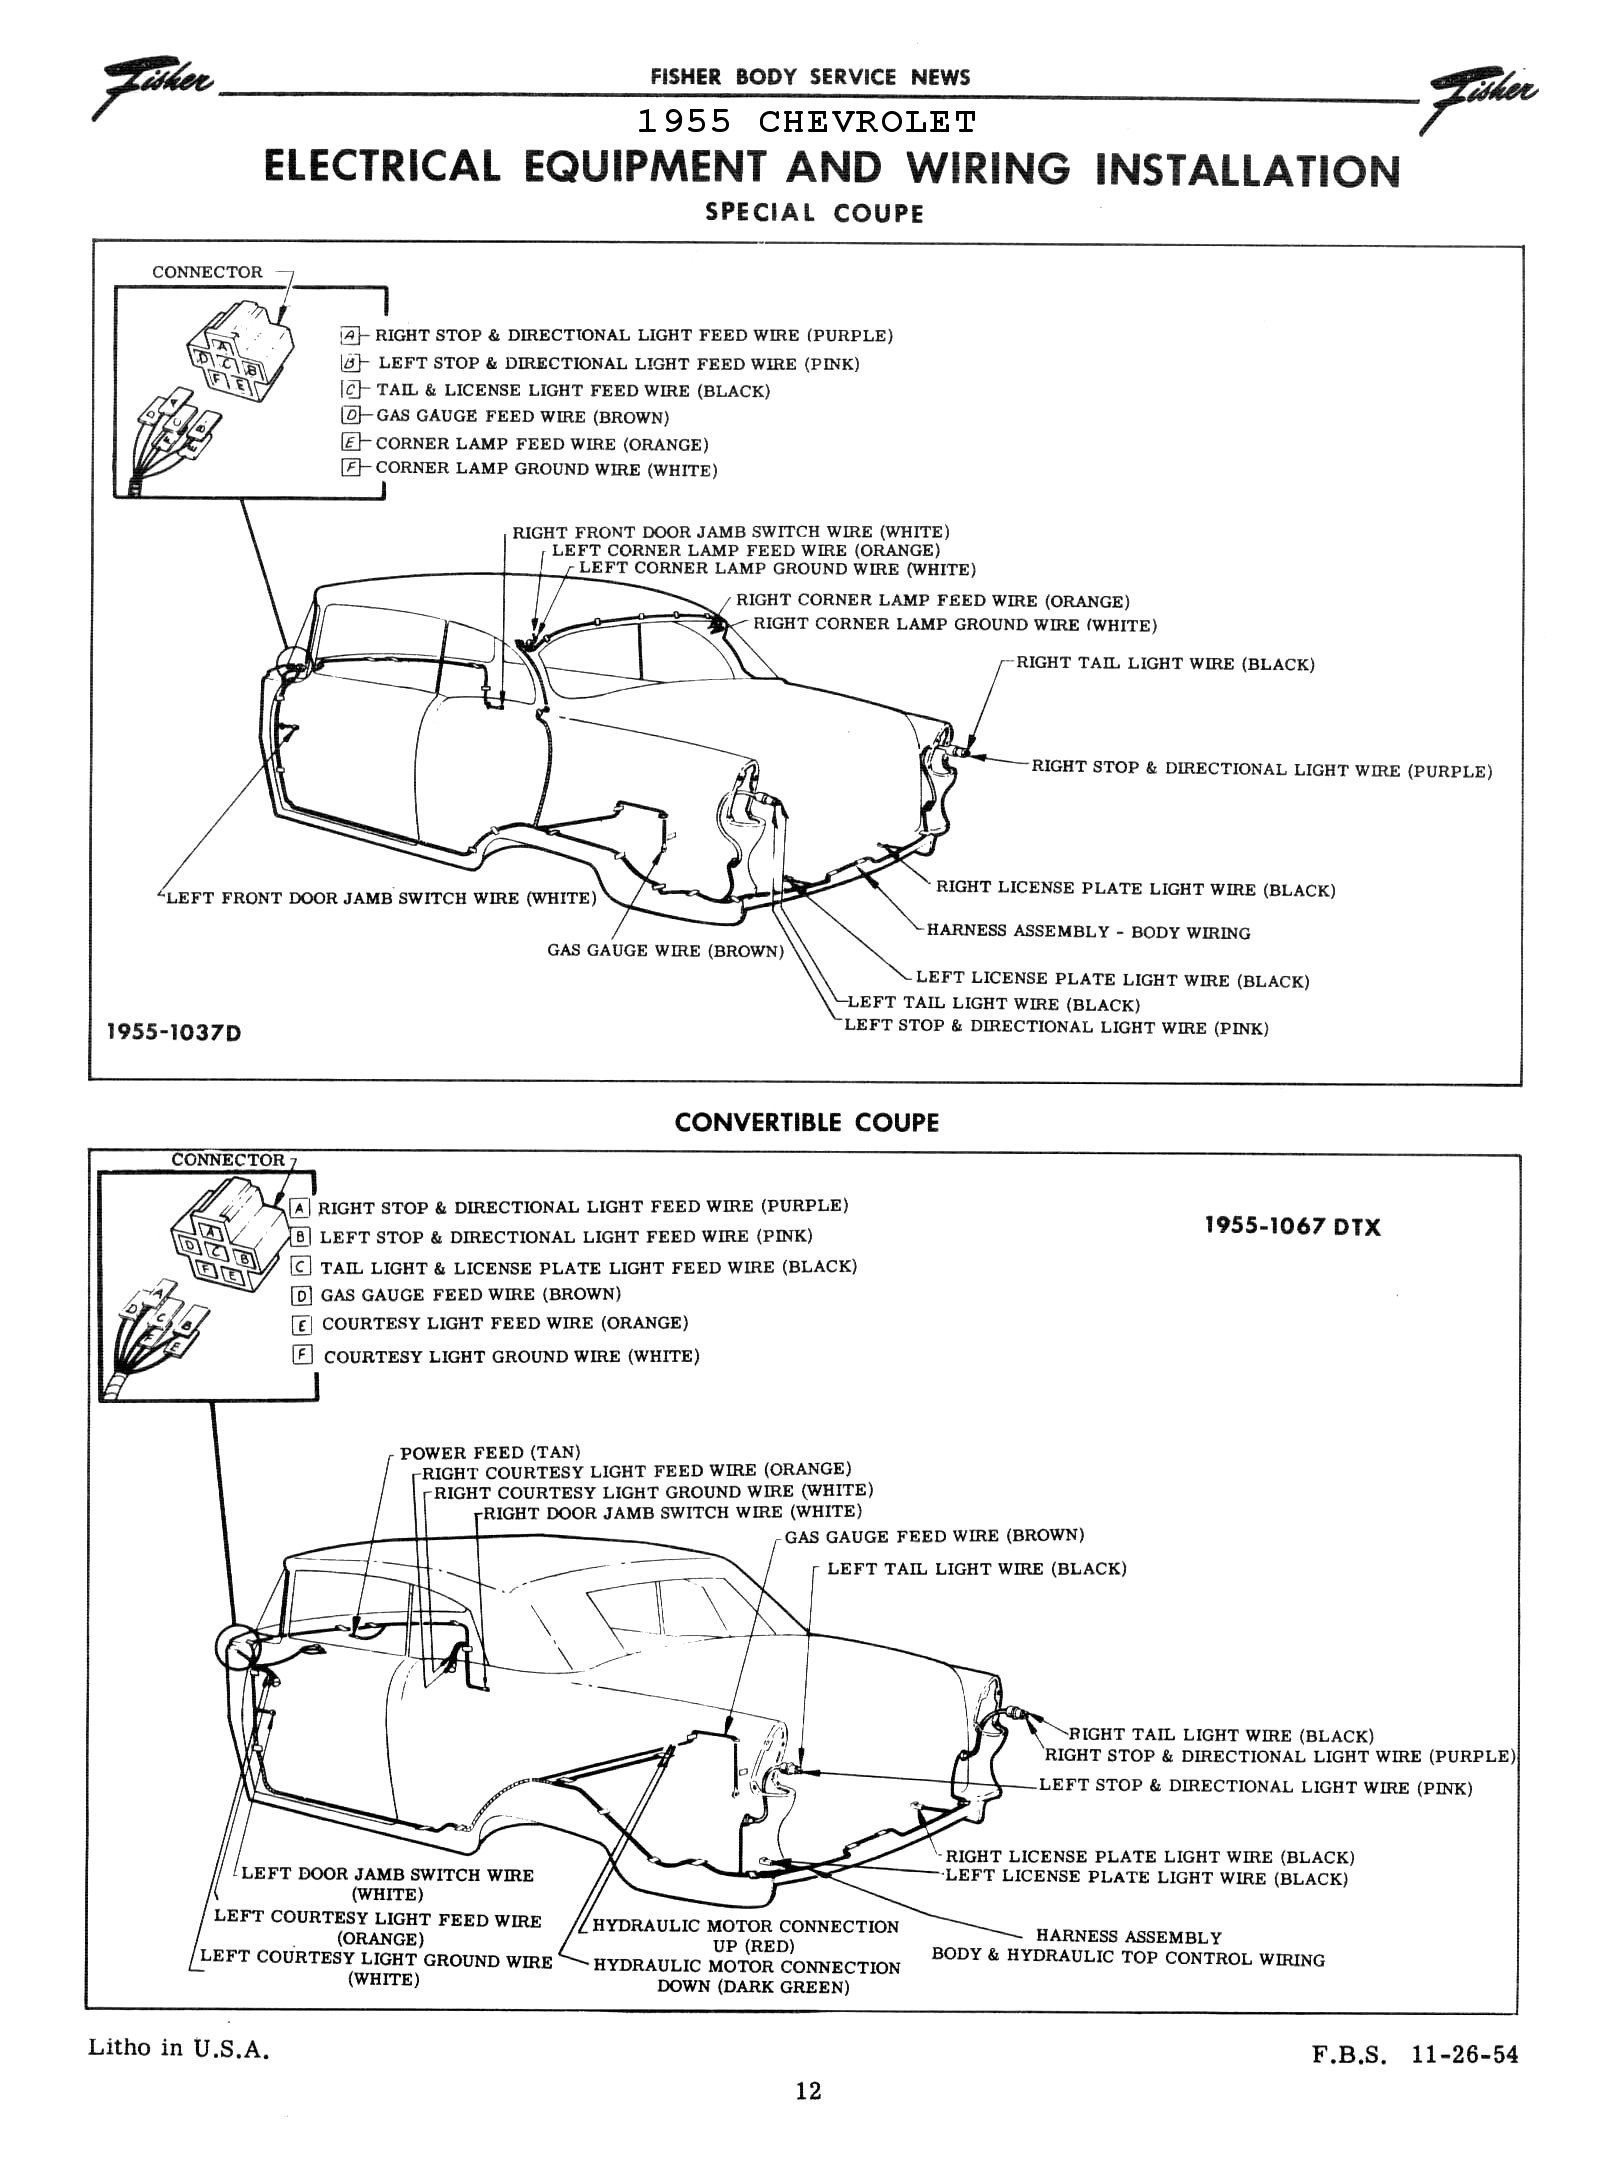 55fsn140612 chevy wiring diagrams 1957 chevy fuel gauge wiring diagram at creativeand.co